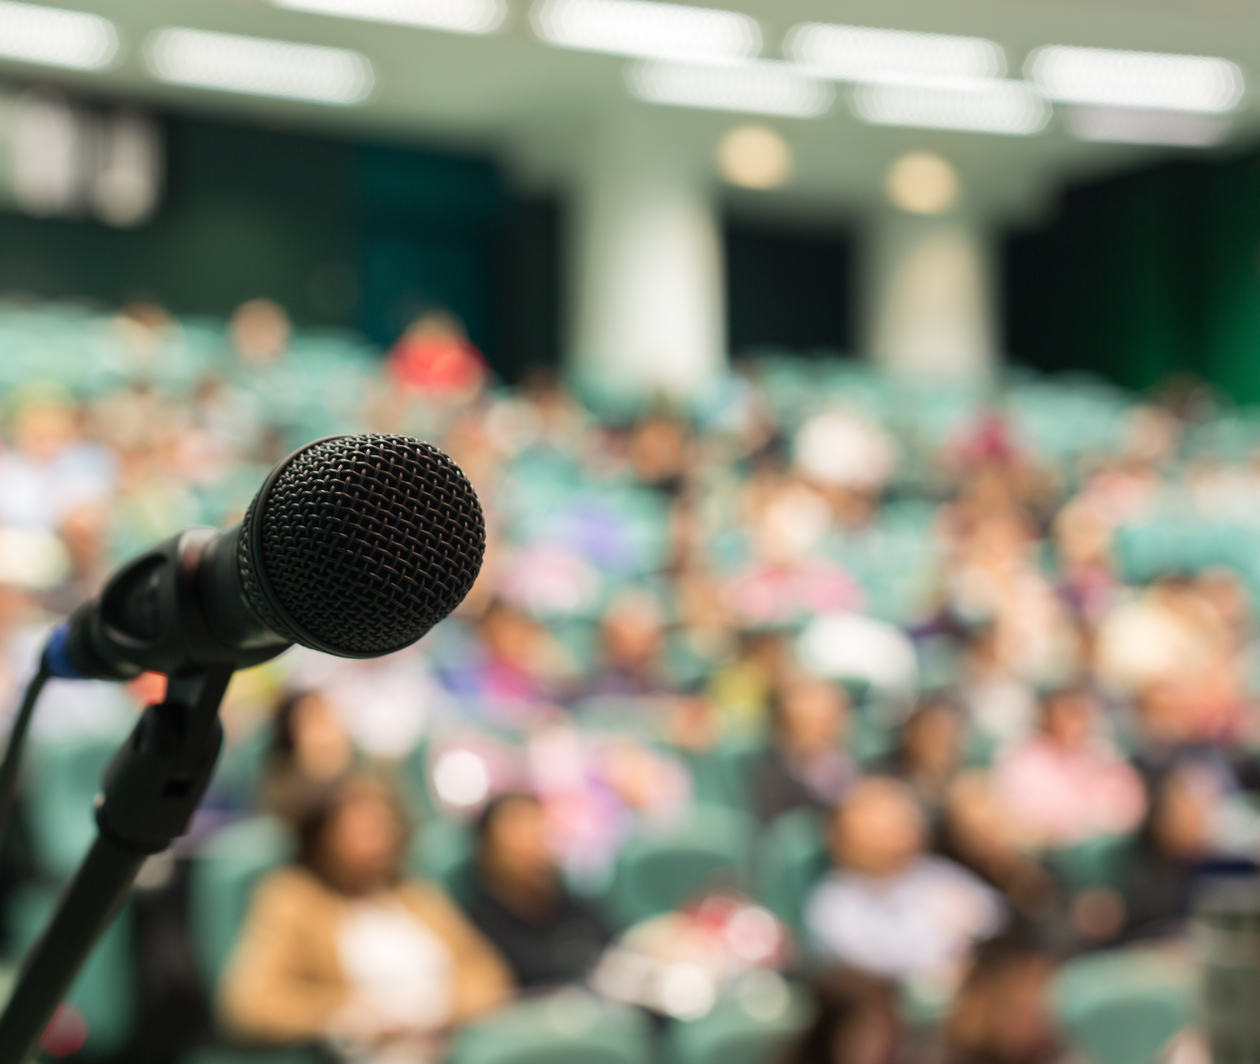 What Makes an Effective Presentation?